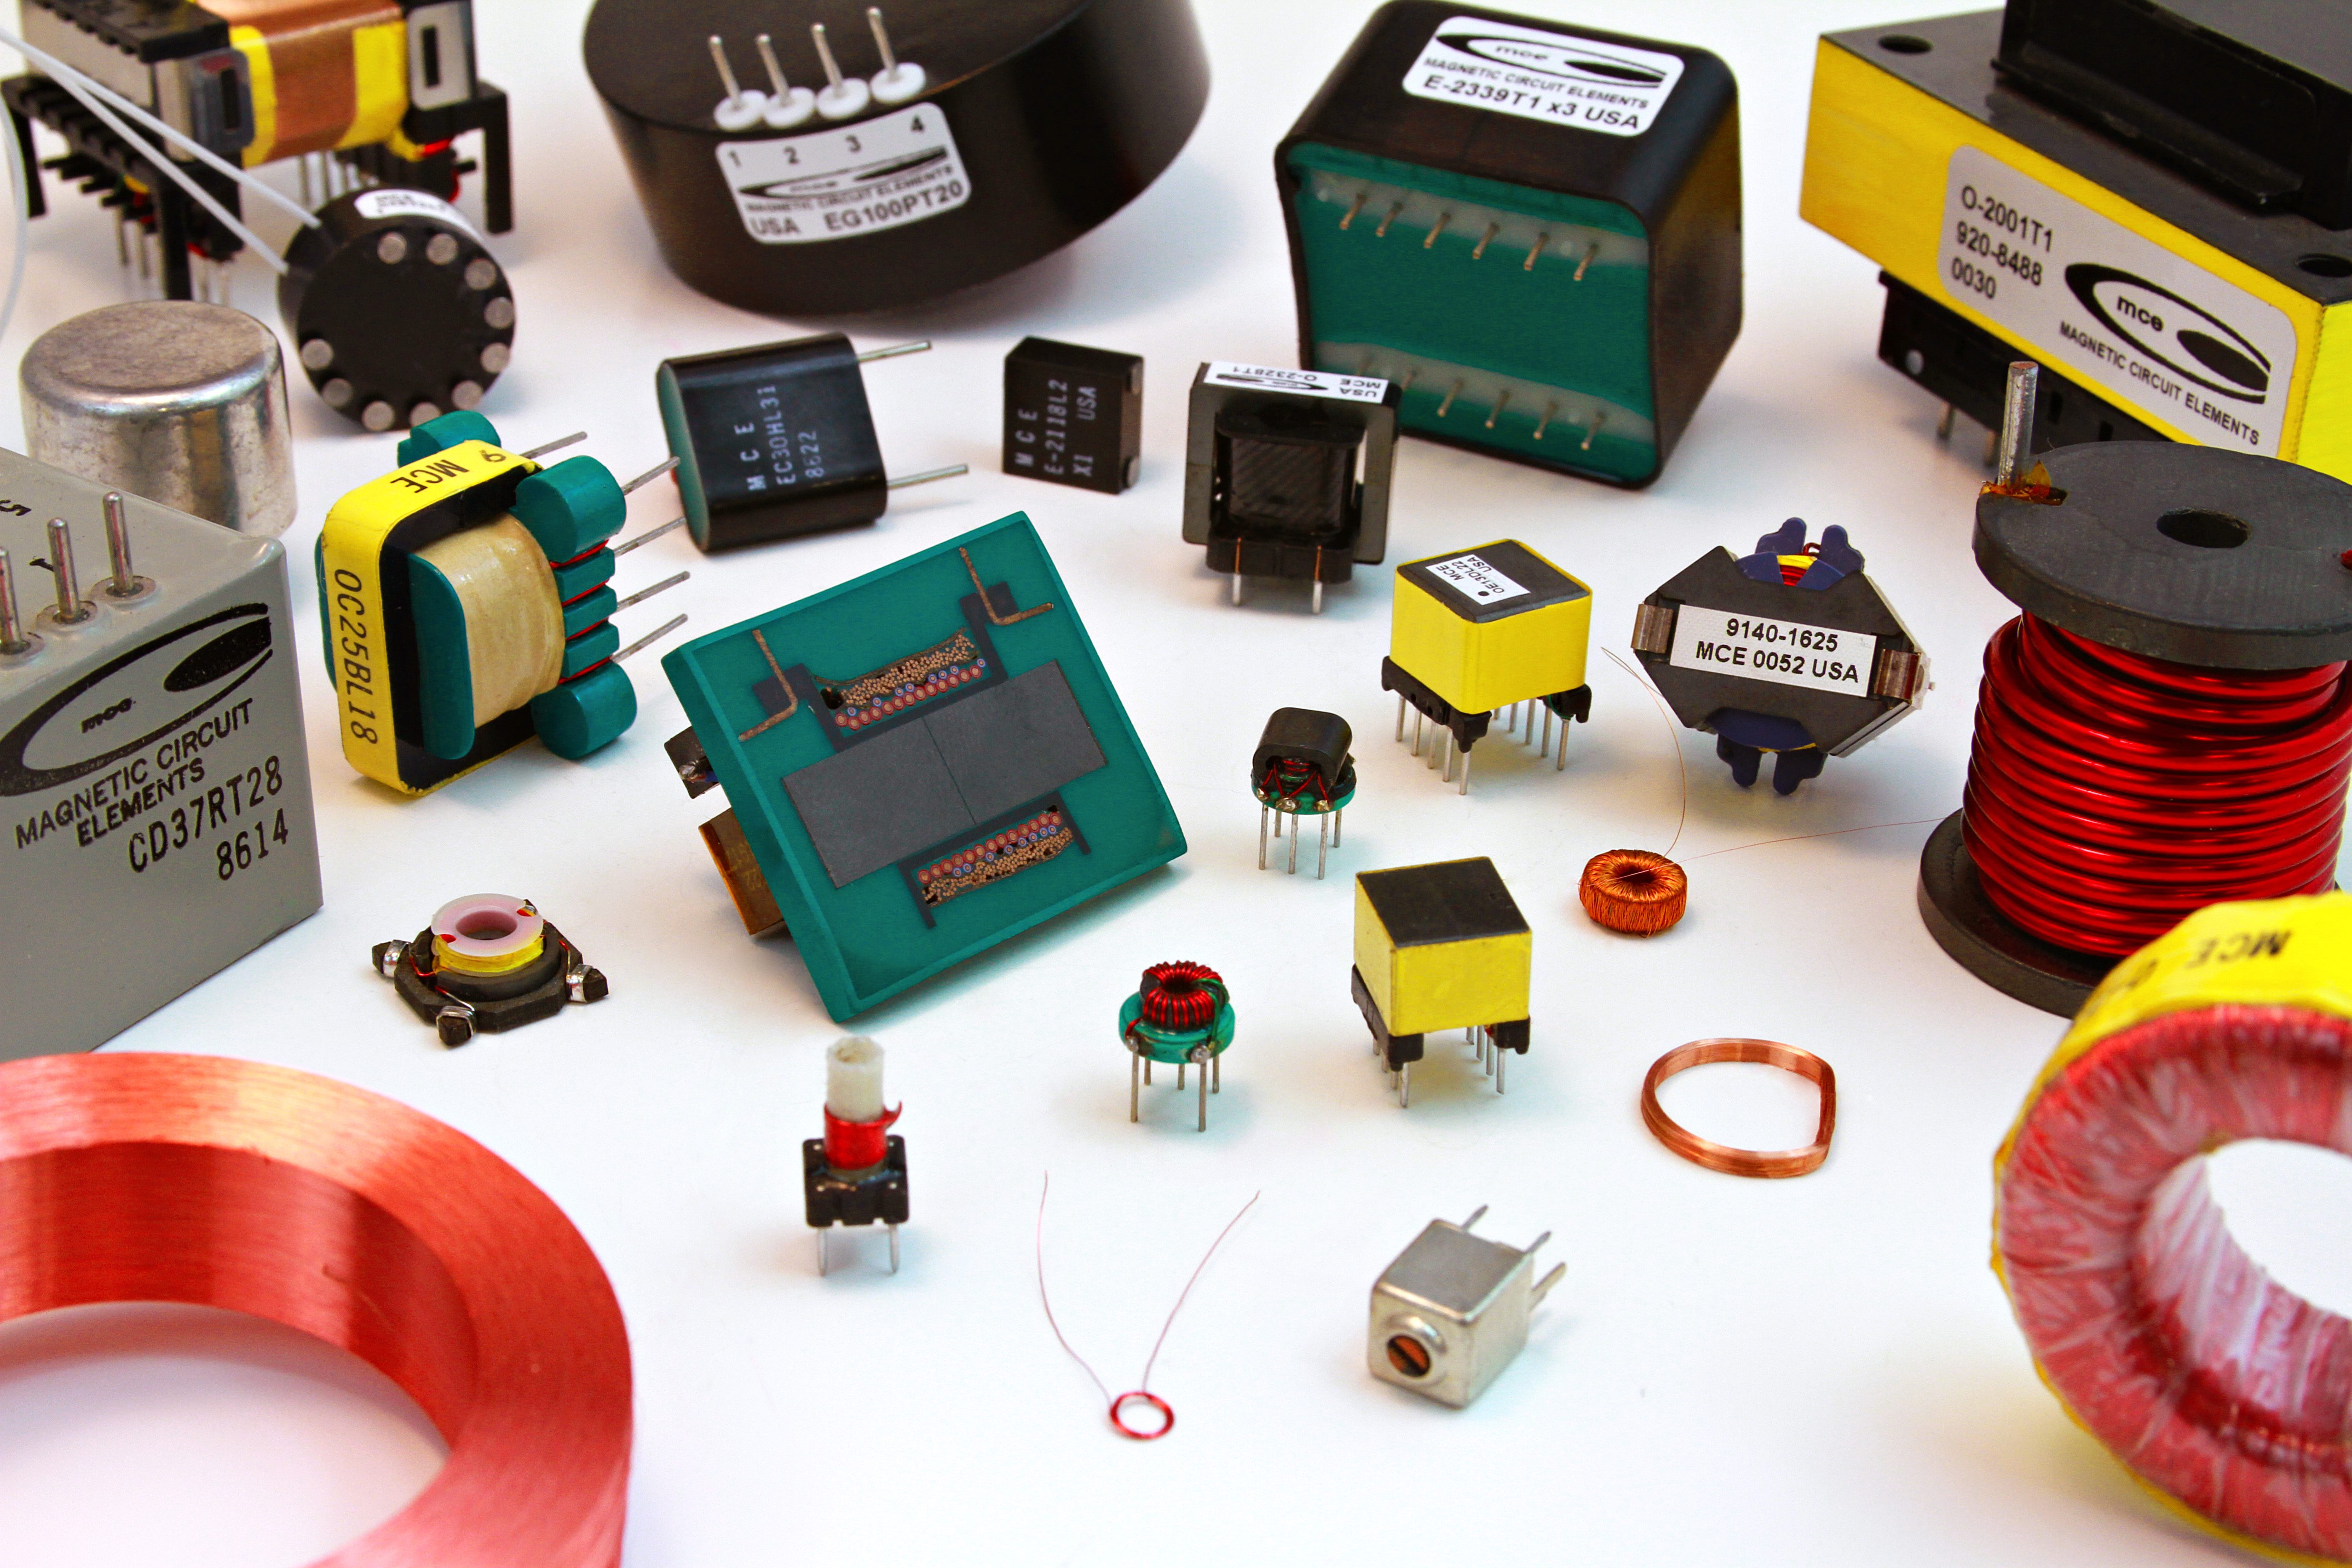 Mce Magnetic Circuit Elements Manufacturers Hv Transformers Chokes Circuits With Inductors Grouping Of Parts